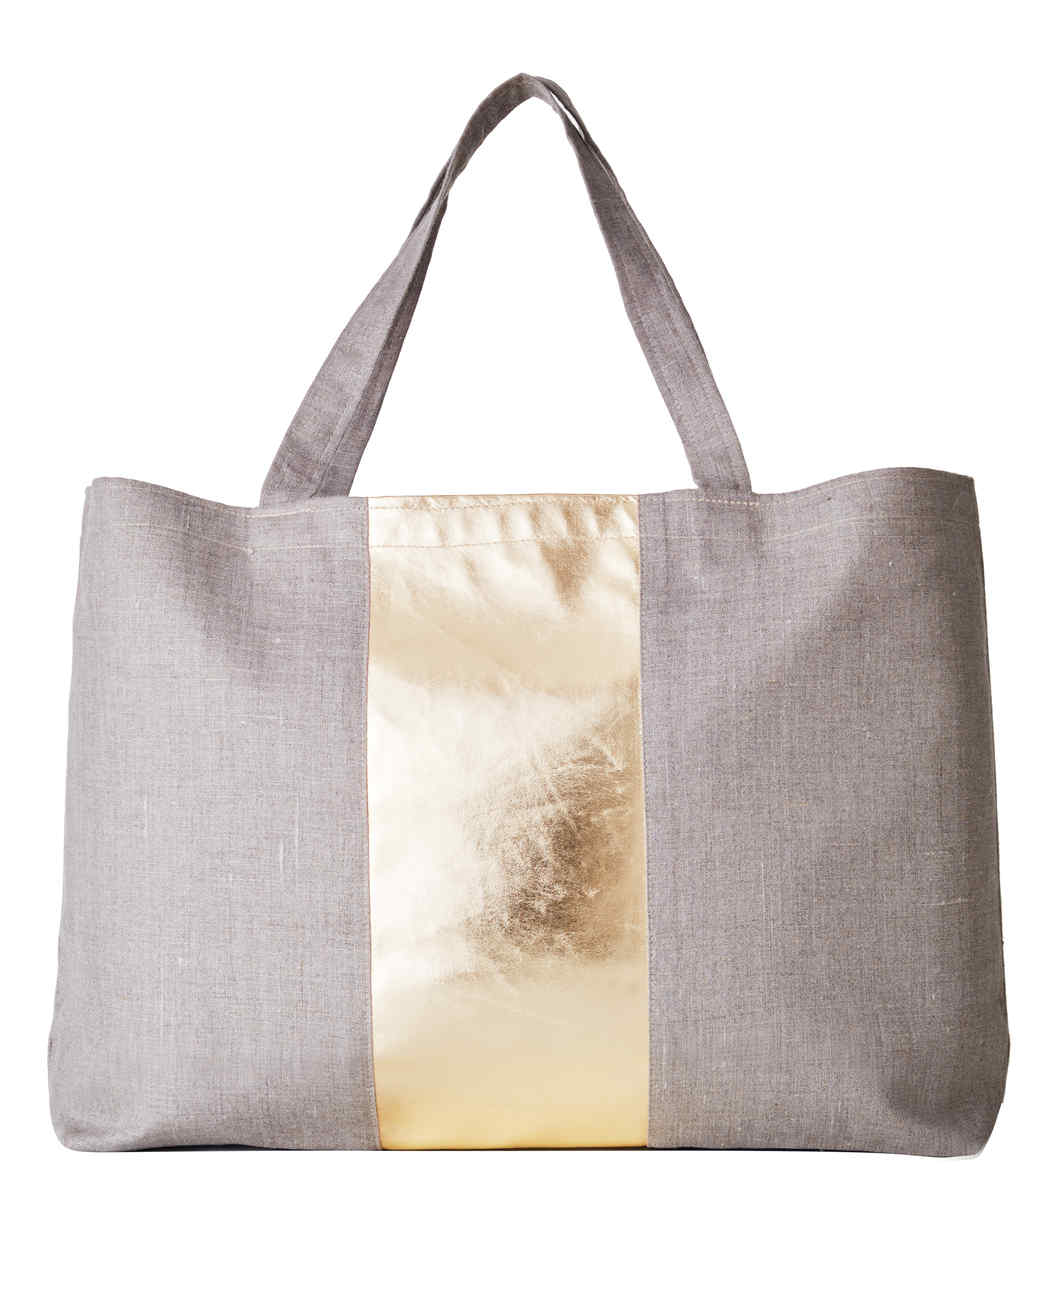 gold-and-gray-tote-bag-264-d112494.jpg